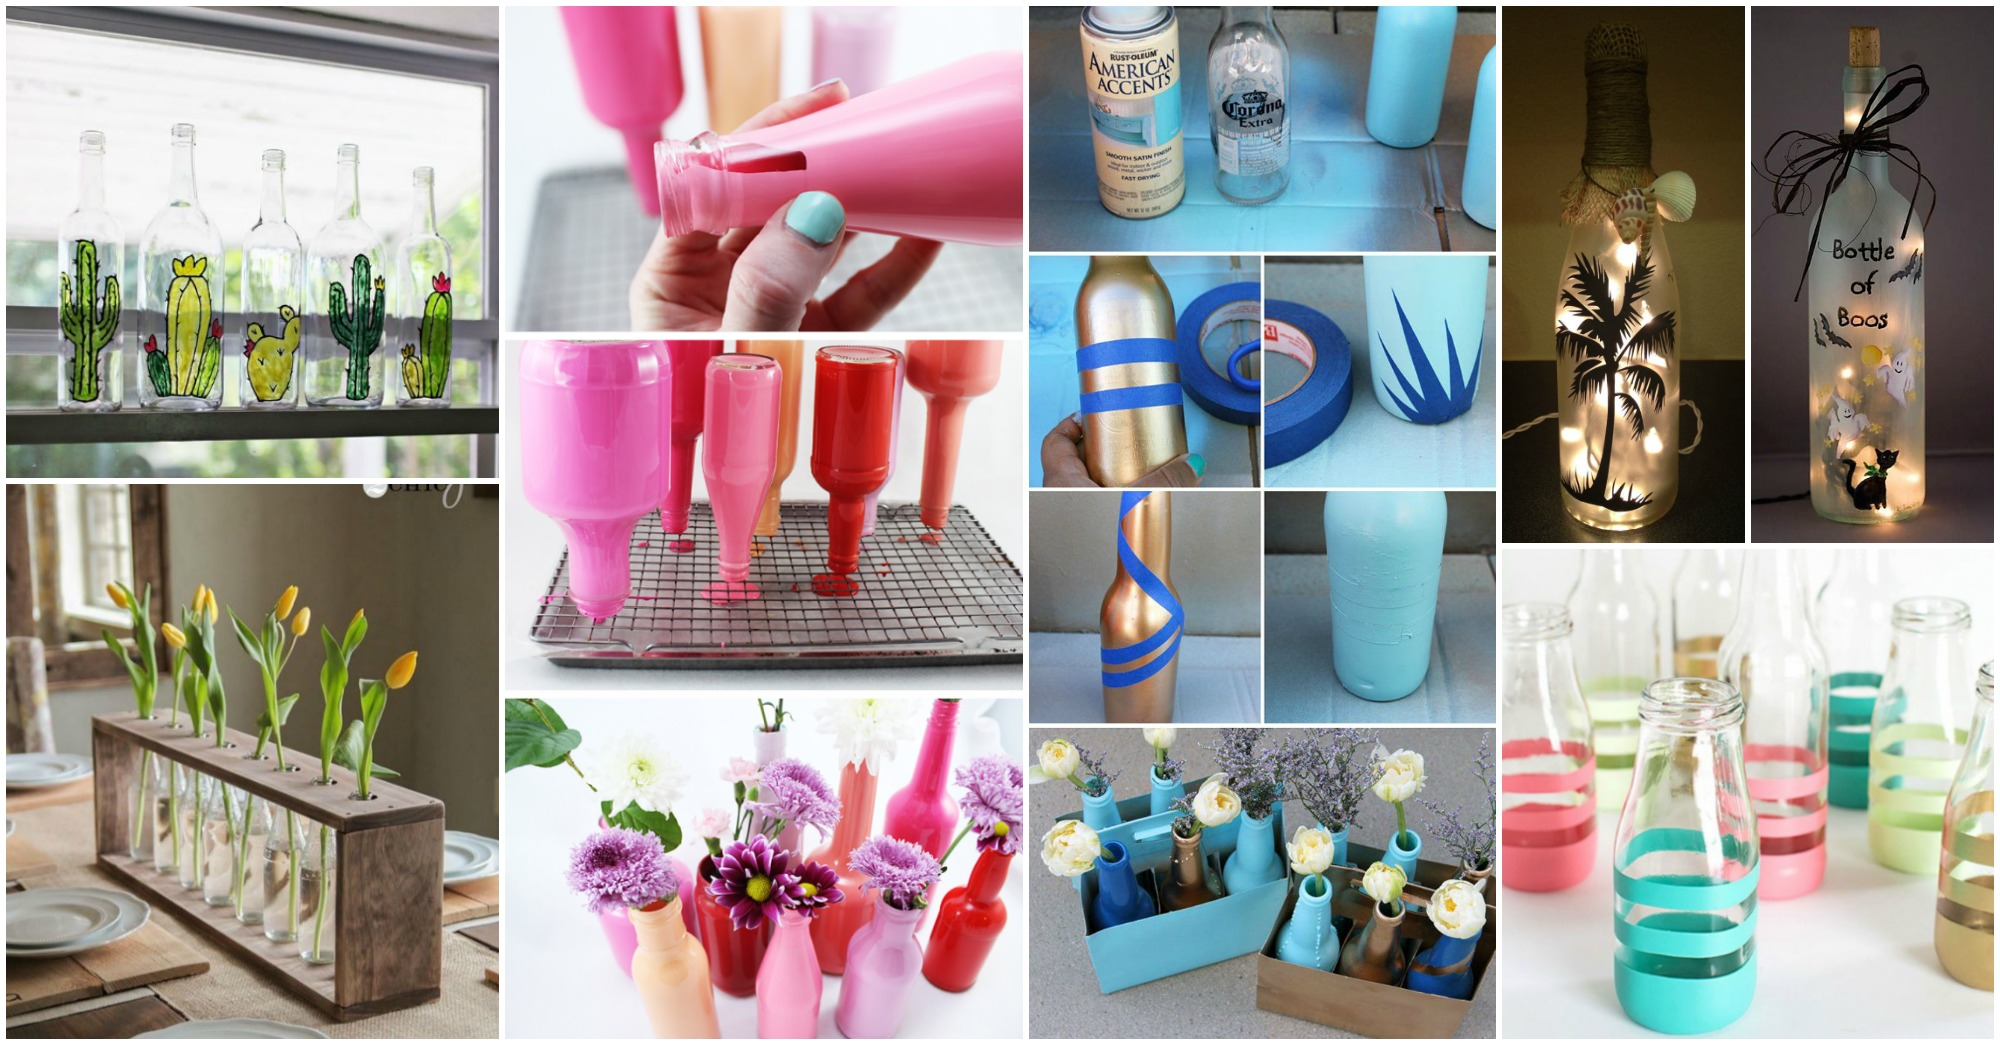 diy-idees-recyclage-bouteille-verre